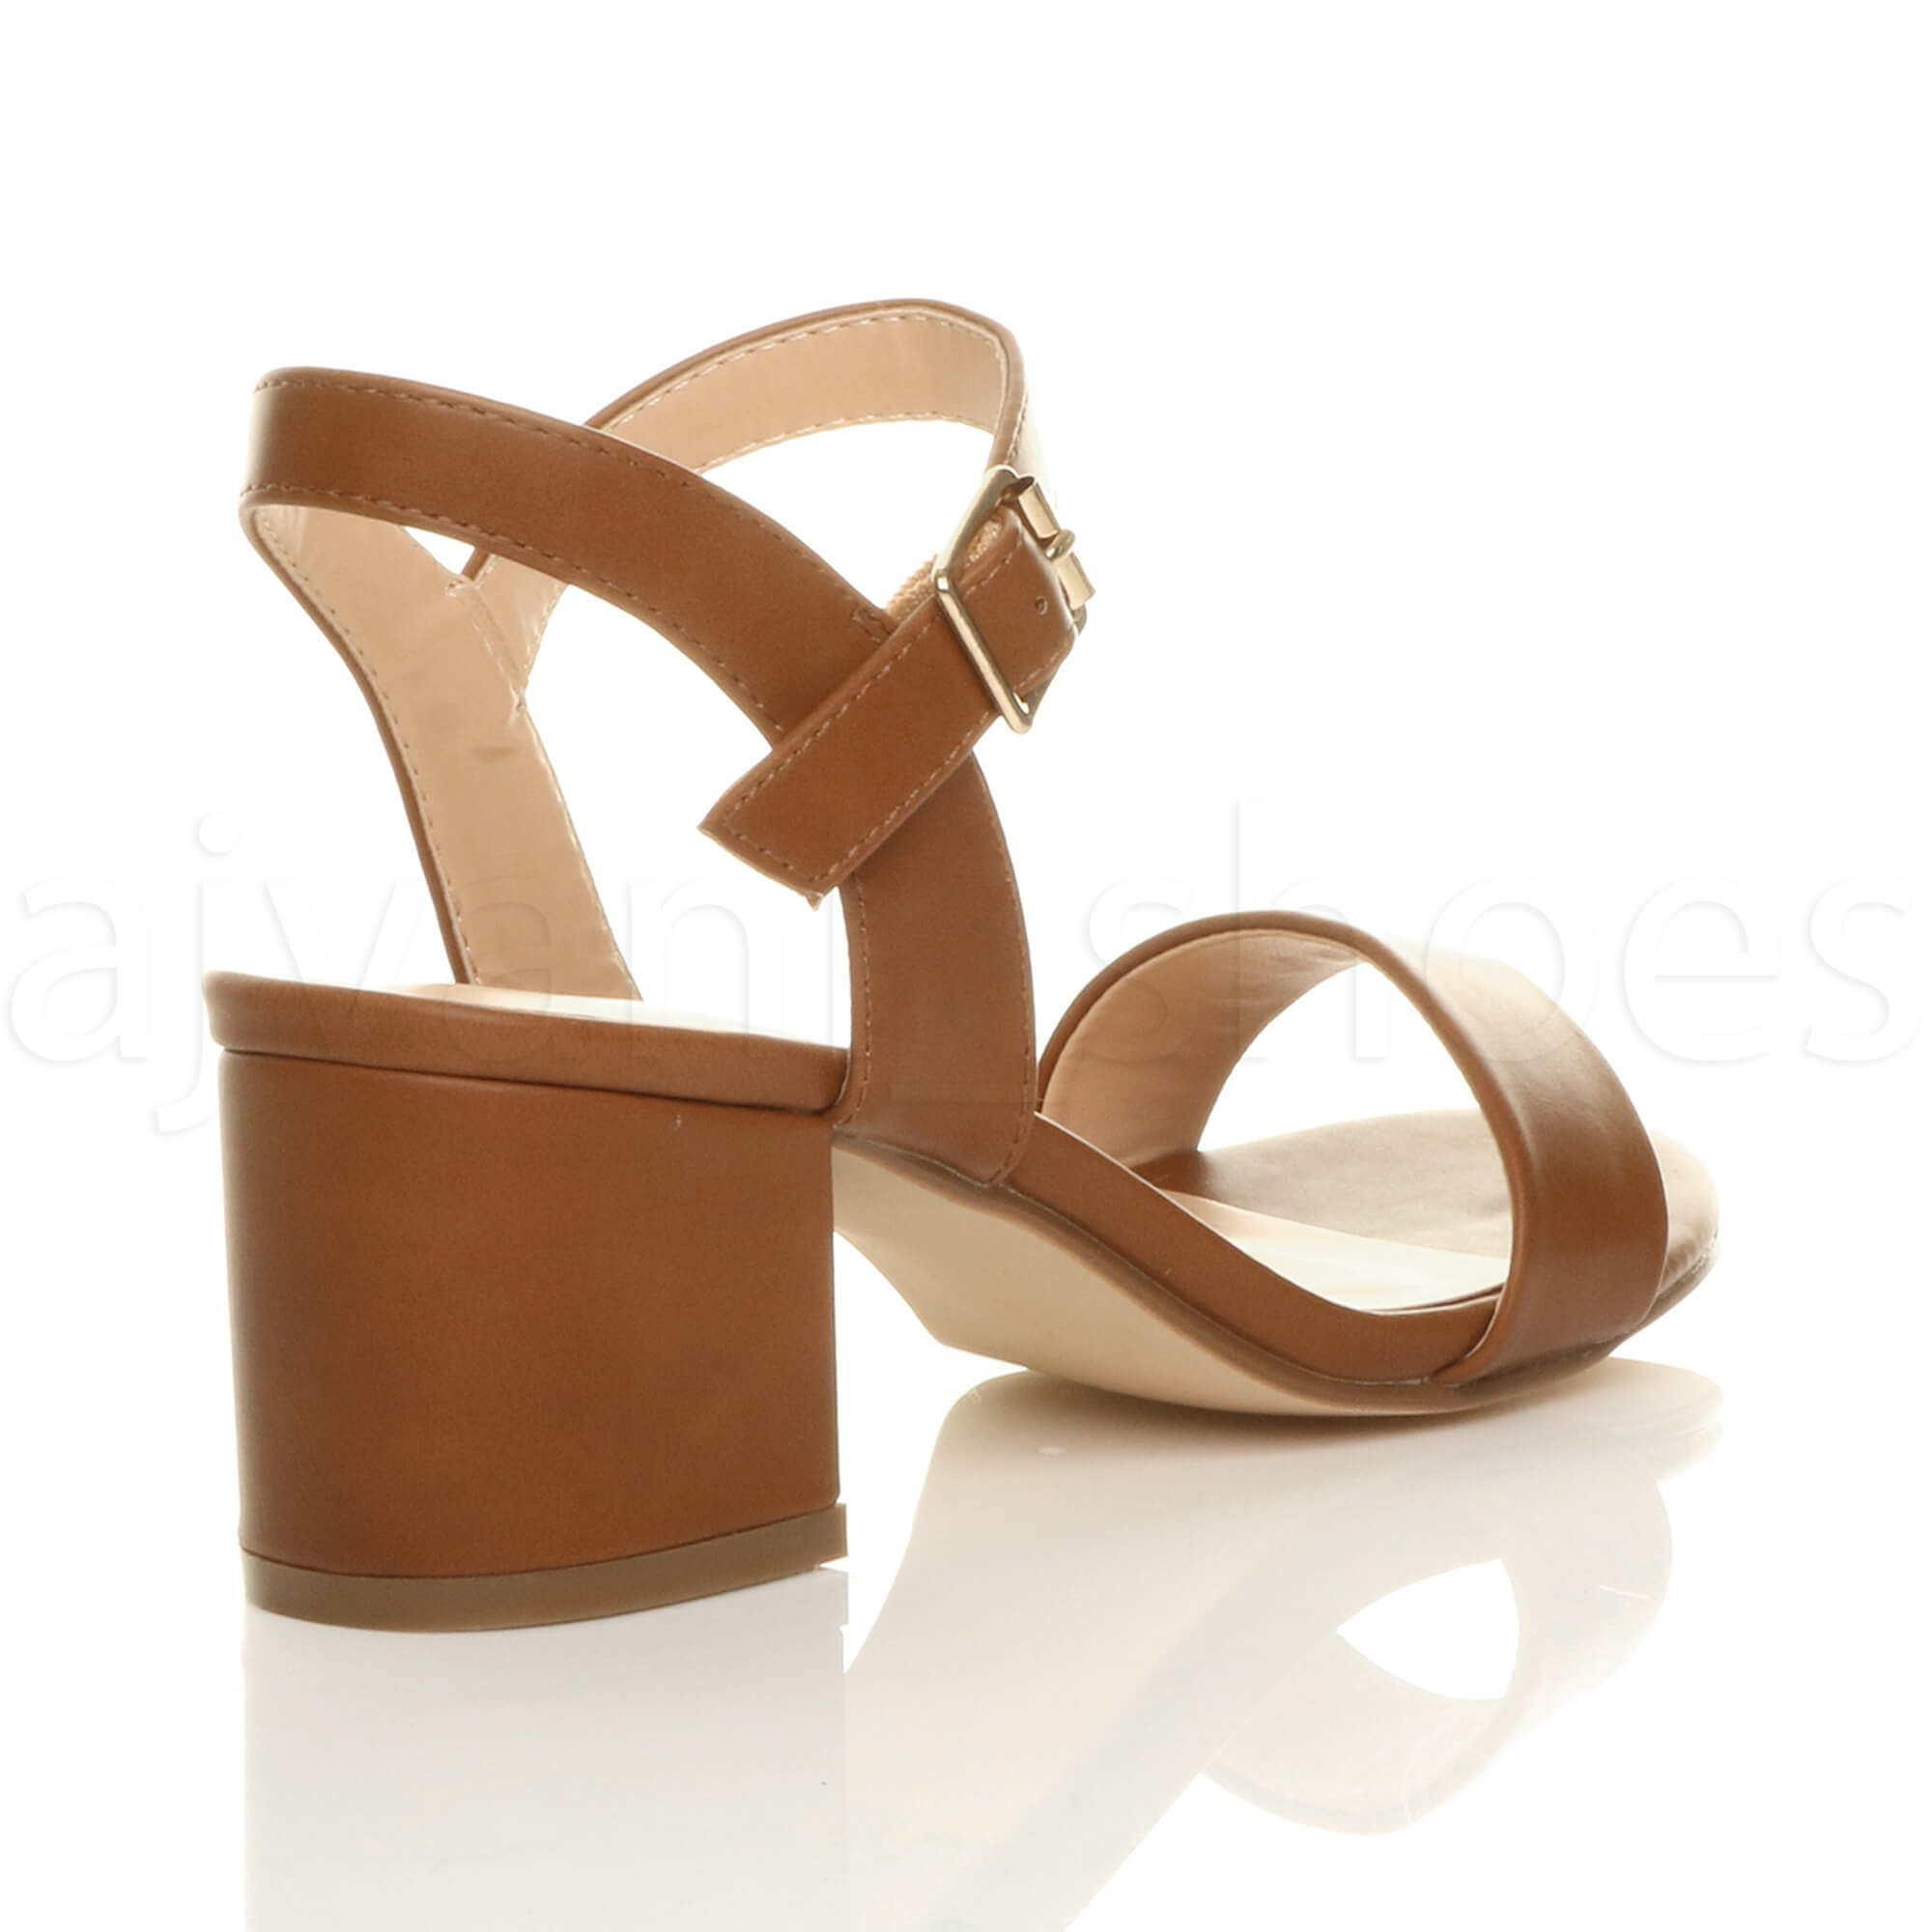 WOMENS-LADIES-MID-LOW-BLOCK-HEEL-PEEP-TOE-ANKLE-STRAP-STRAPPY-PARTY-SANDALS-SIZE thumbnail 141